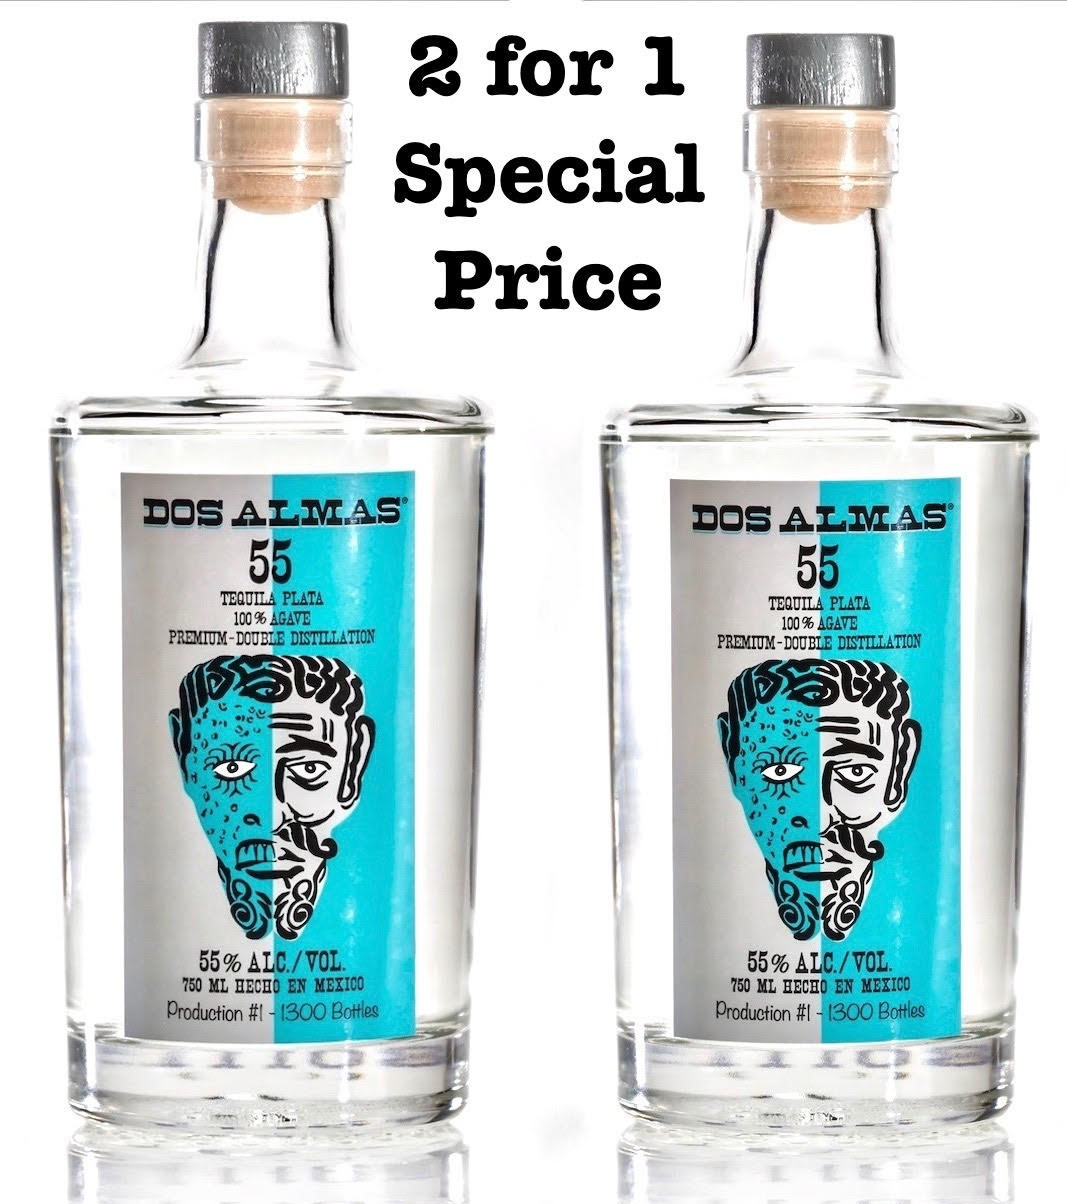 DOS ALMAS 55 PLATINUM TEQUILA Two for price of one